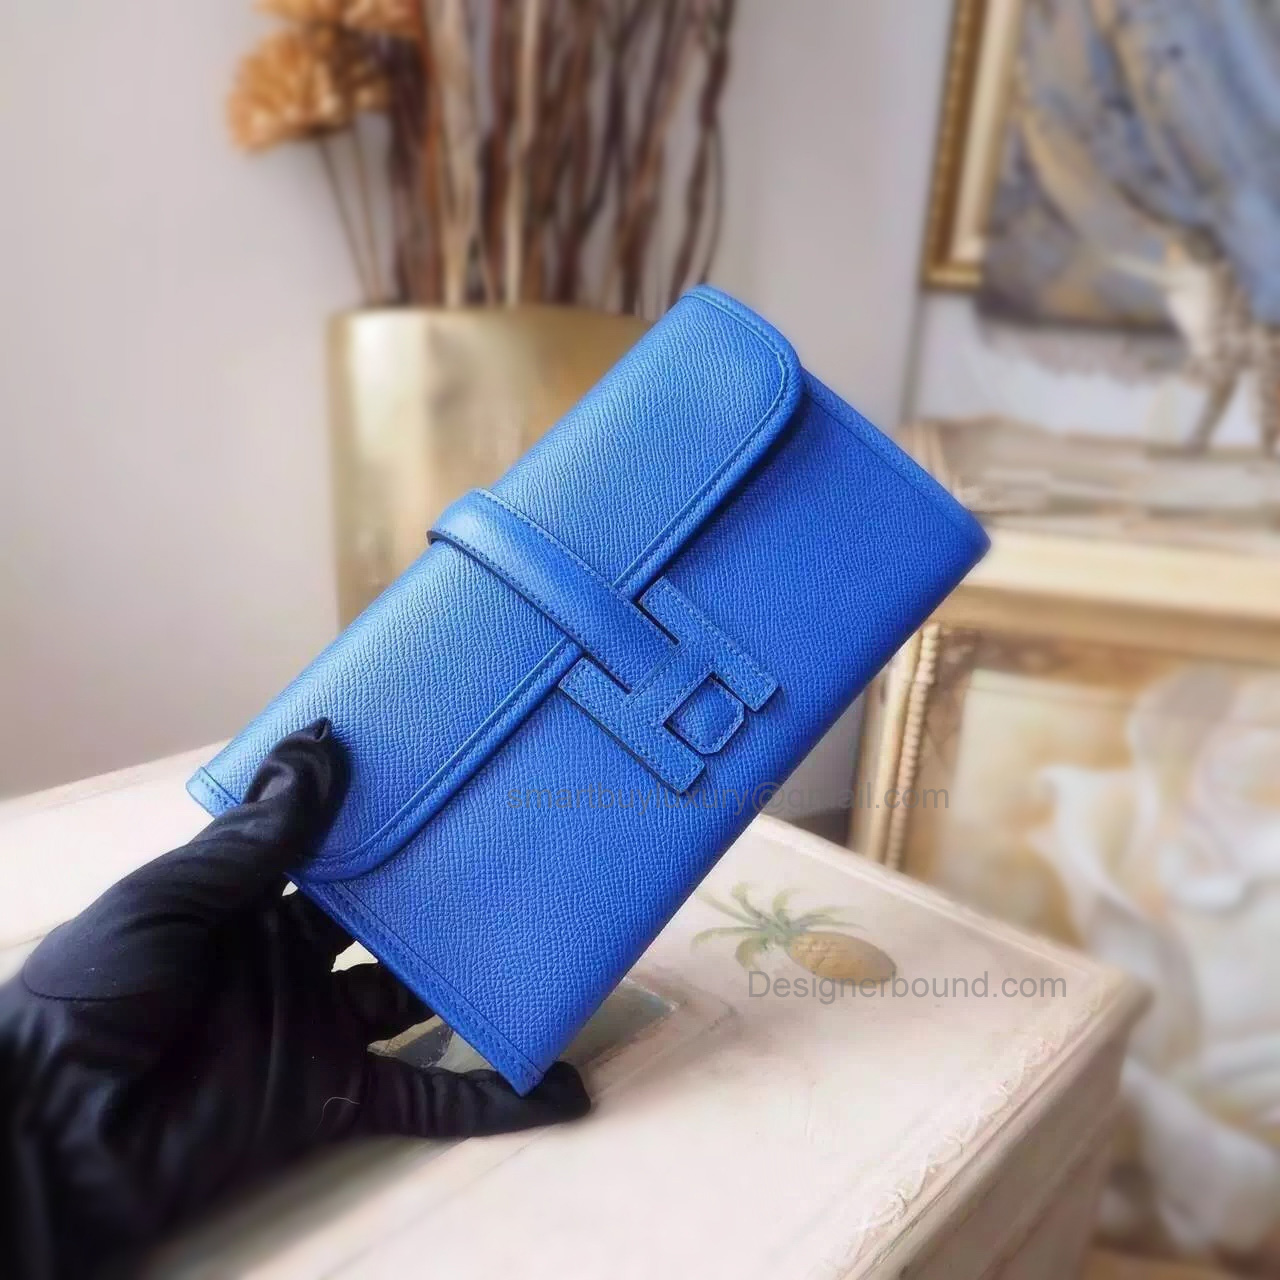 Copy Hermes Jige Mini Clutch Handmade in Blue Electric 7t Epsom Calfskin